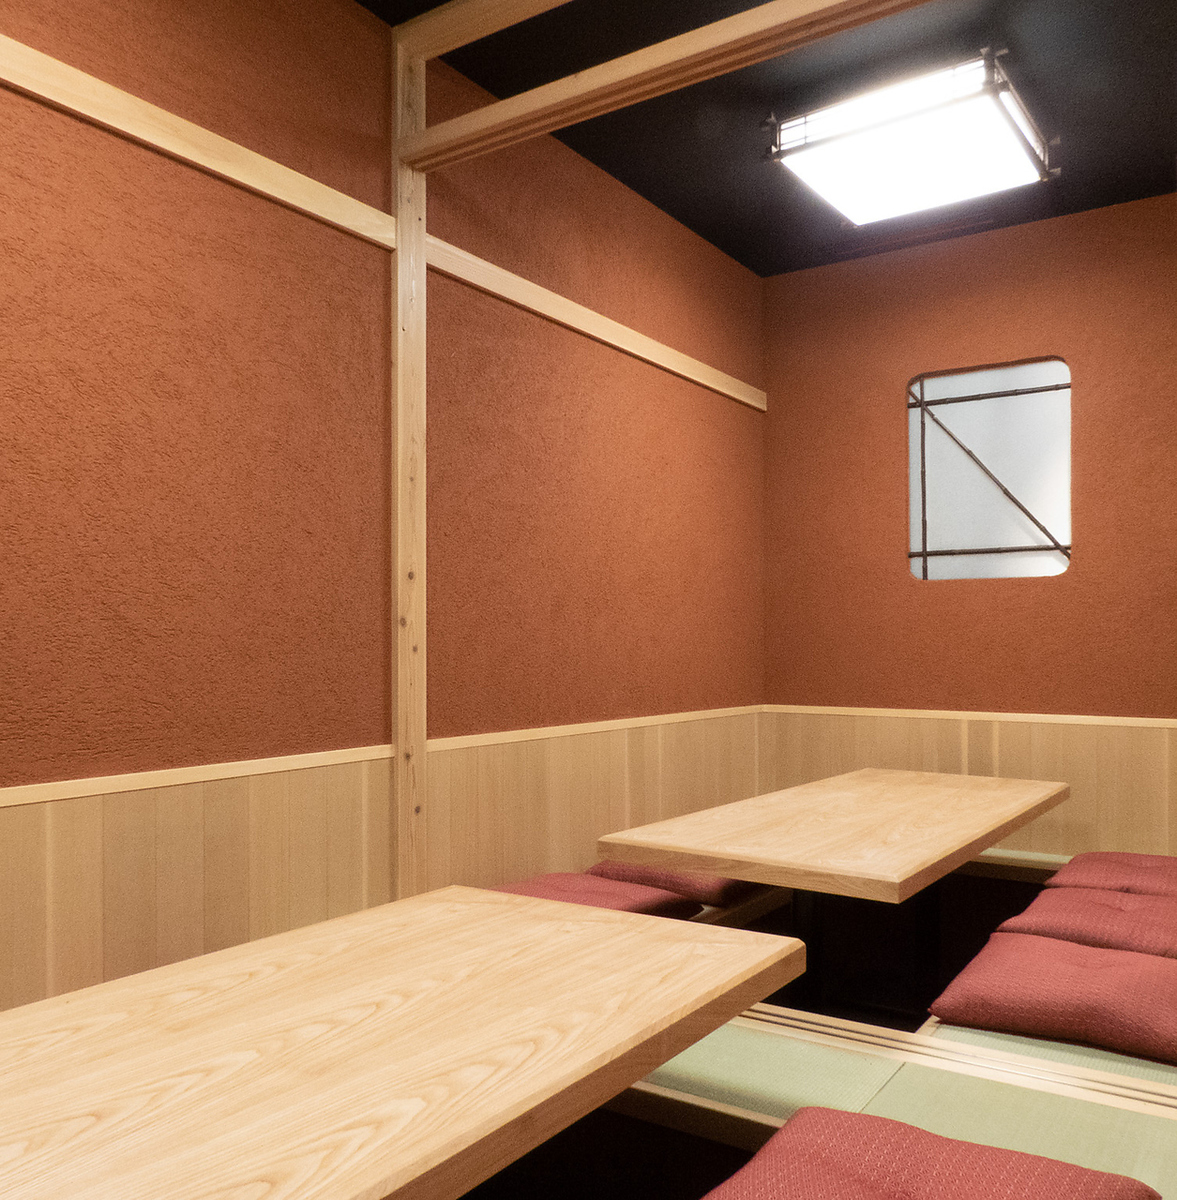 2 F ... digging tatami room Up to 16 people can be accommodated according to the number of people.We will respond even if there are more people, please feel free to contact us.